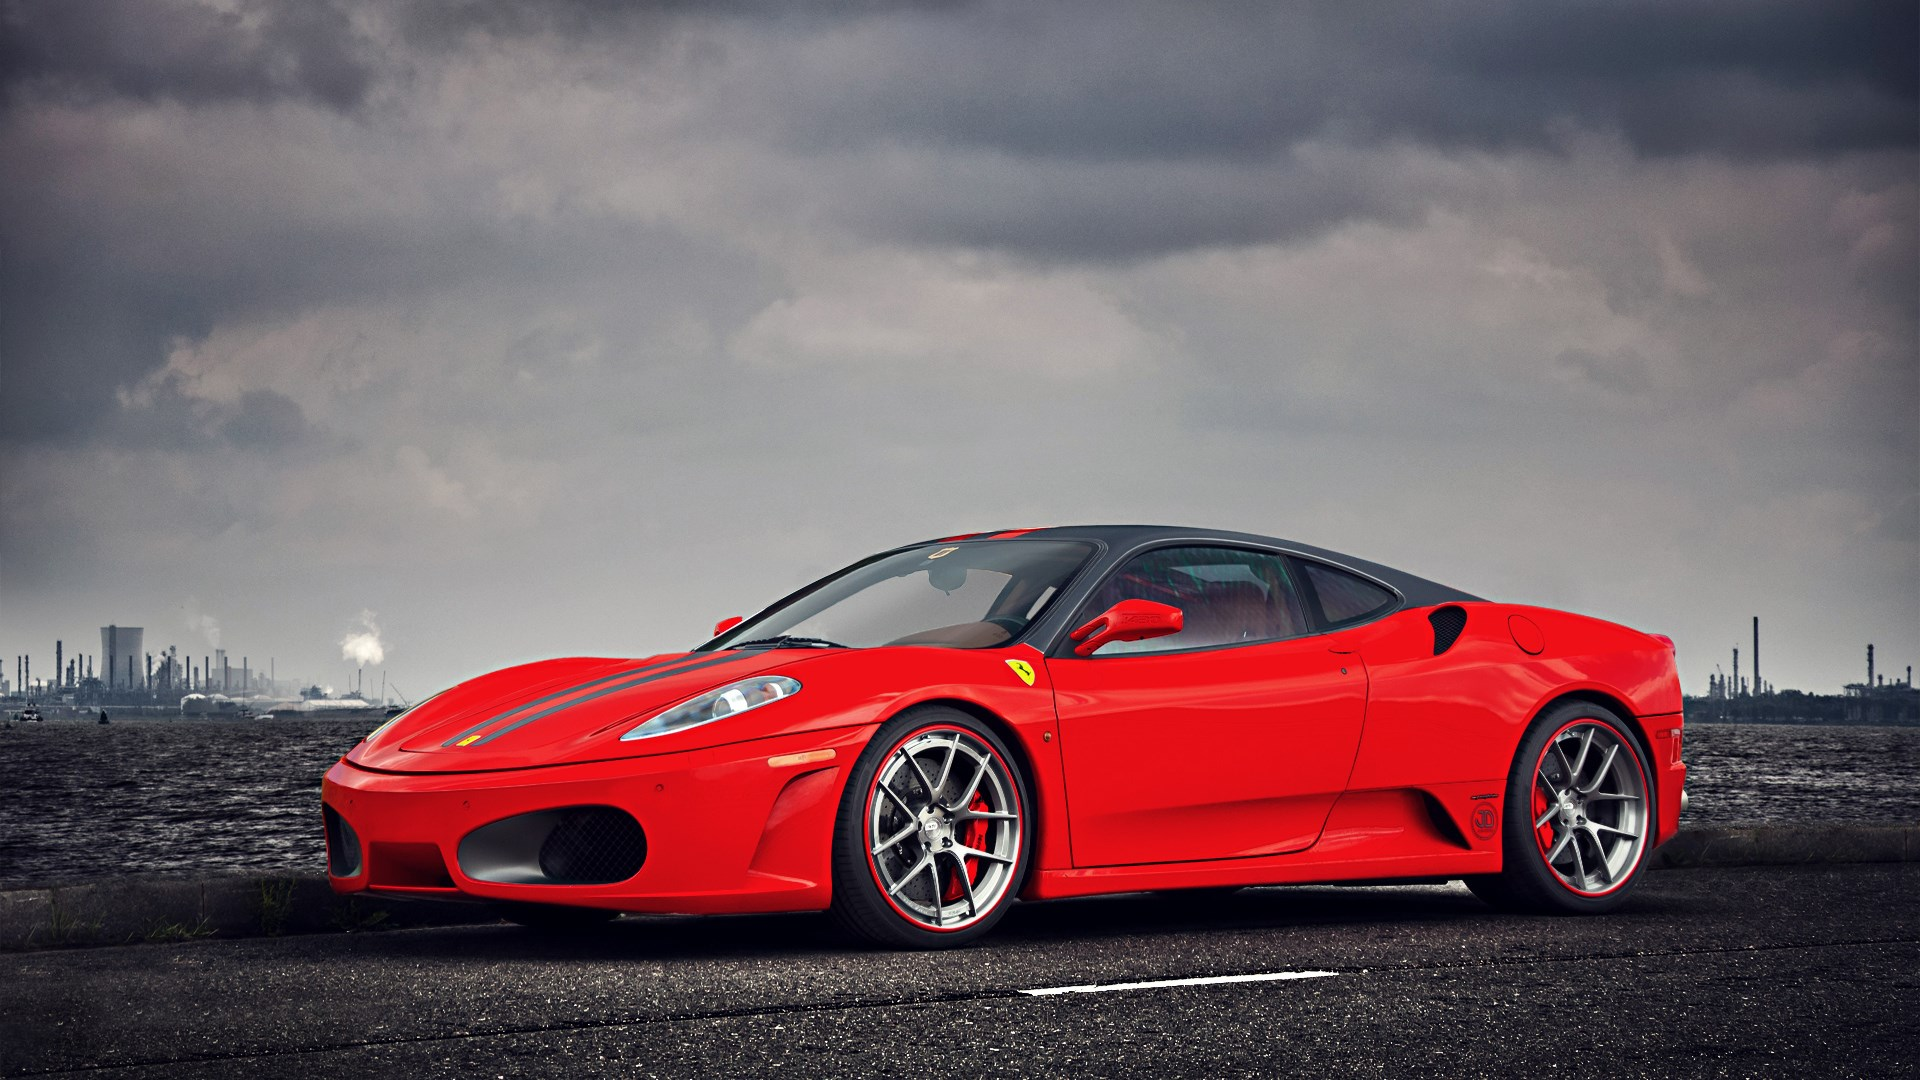 Ferrari F430 Red Parking